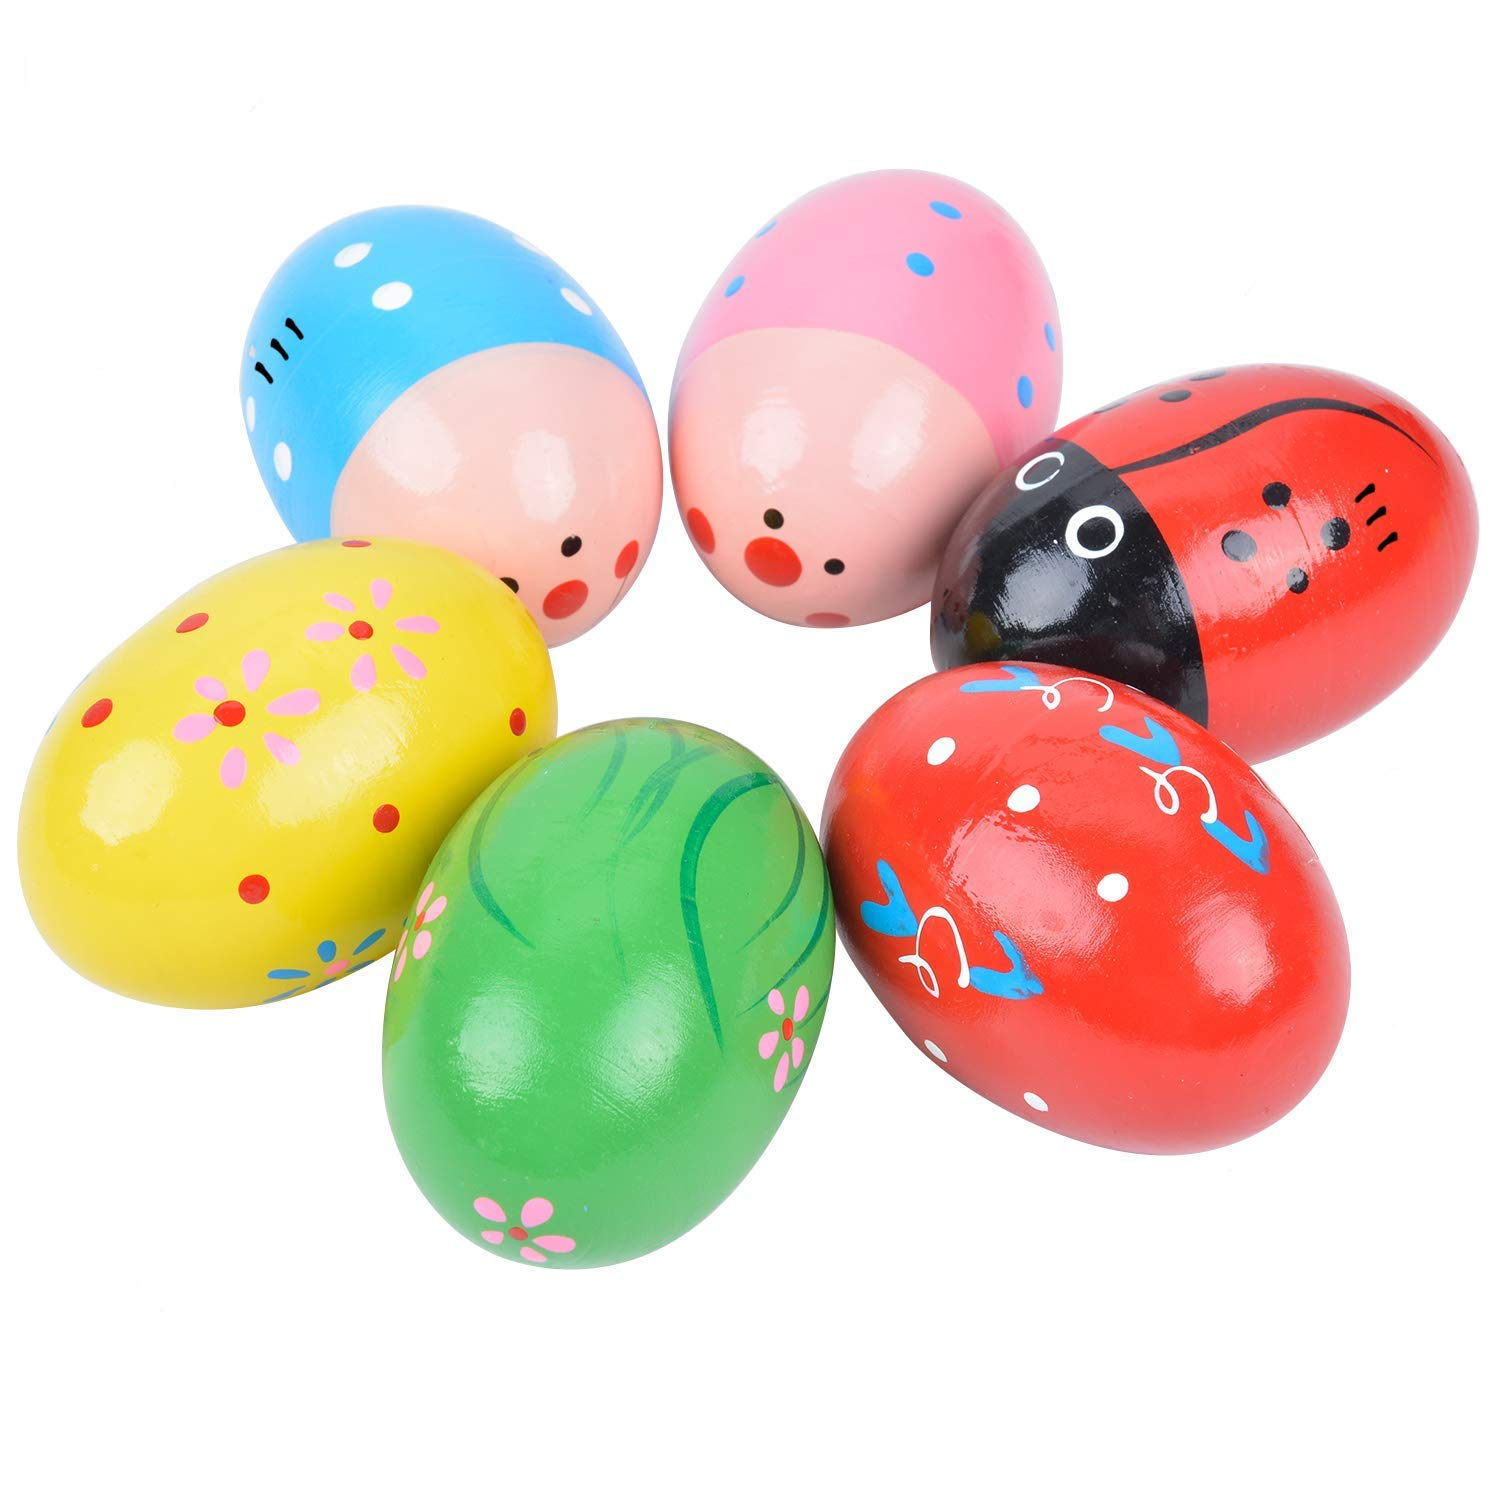 Fansport 6PCS Egg Shaker Educational Percussion Musical Egg Maracas Egg Kids Toys